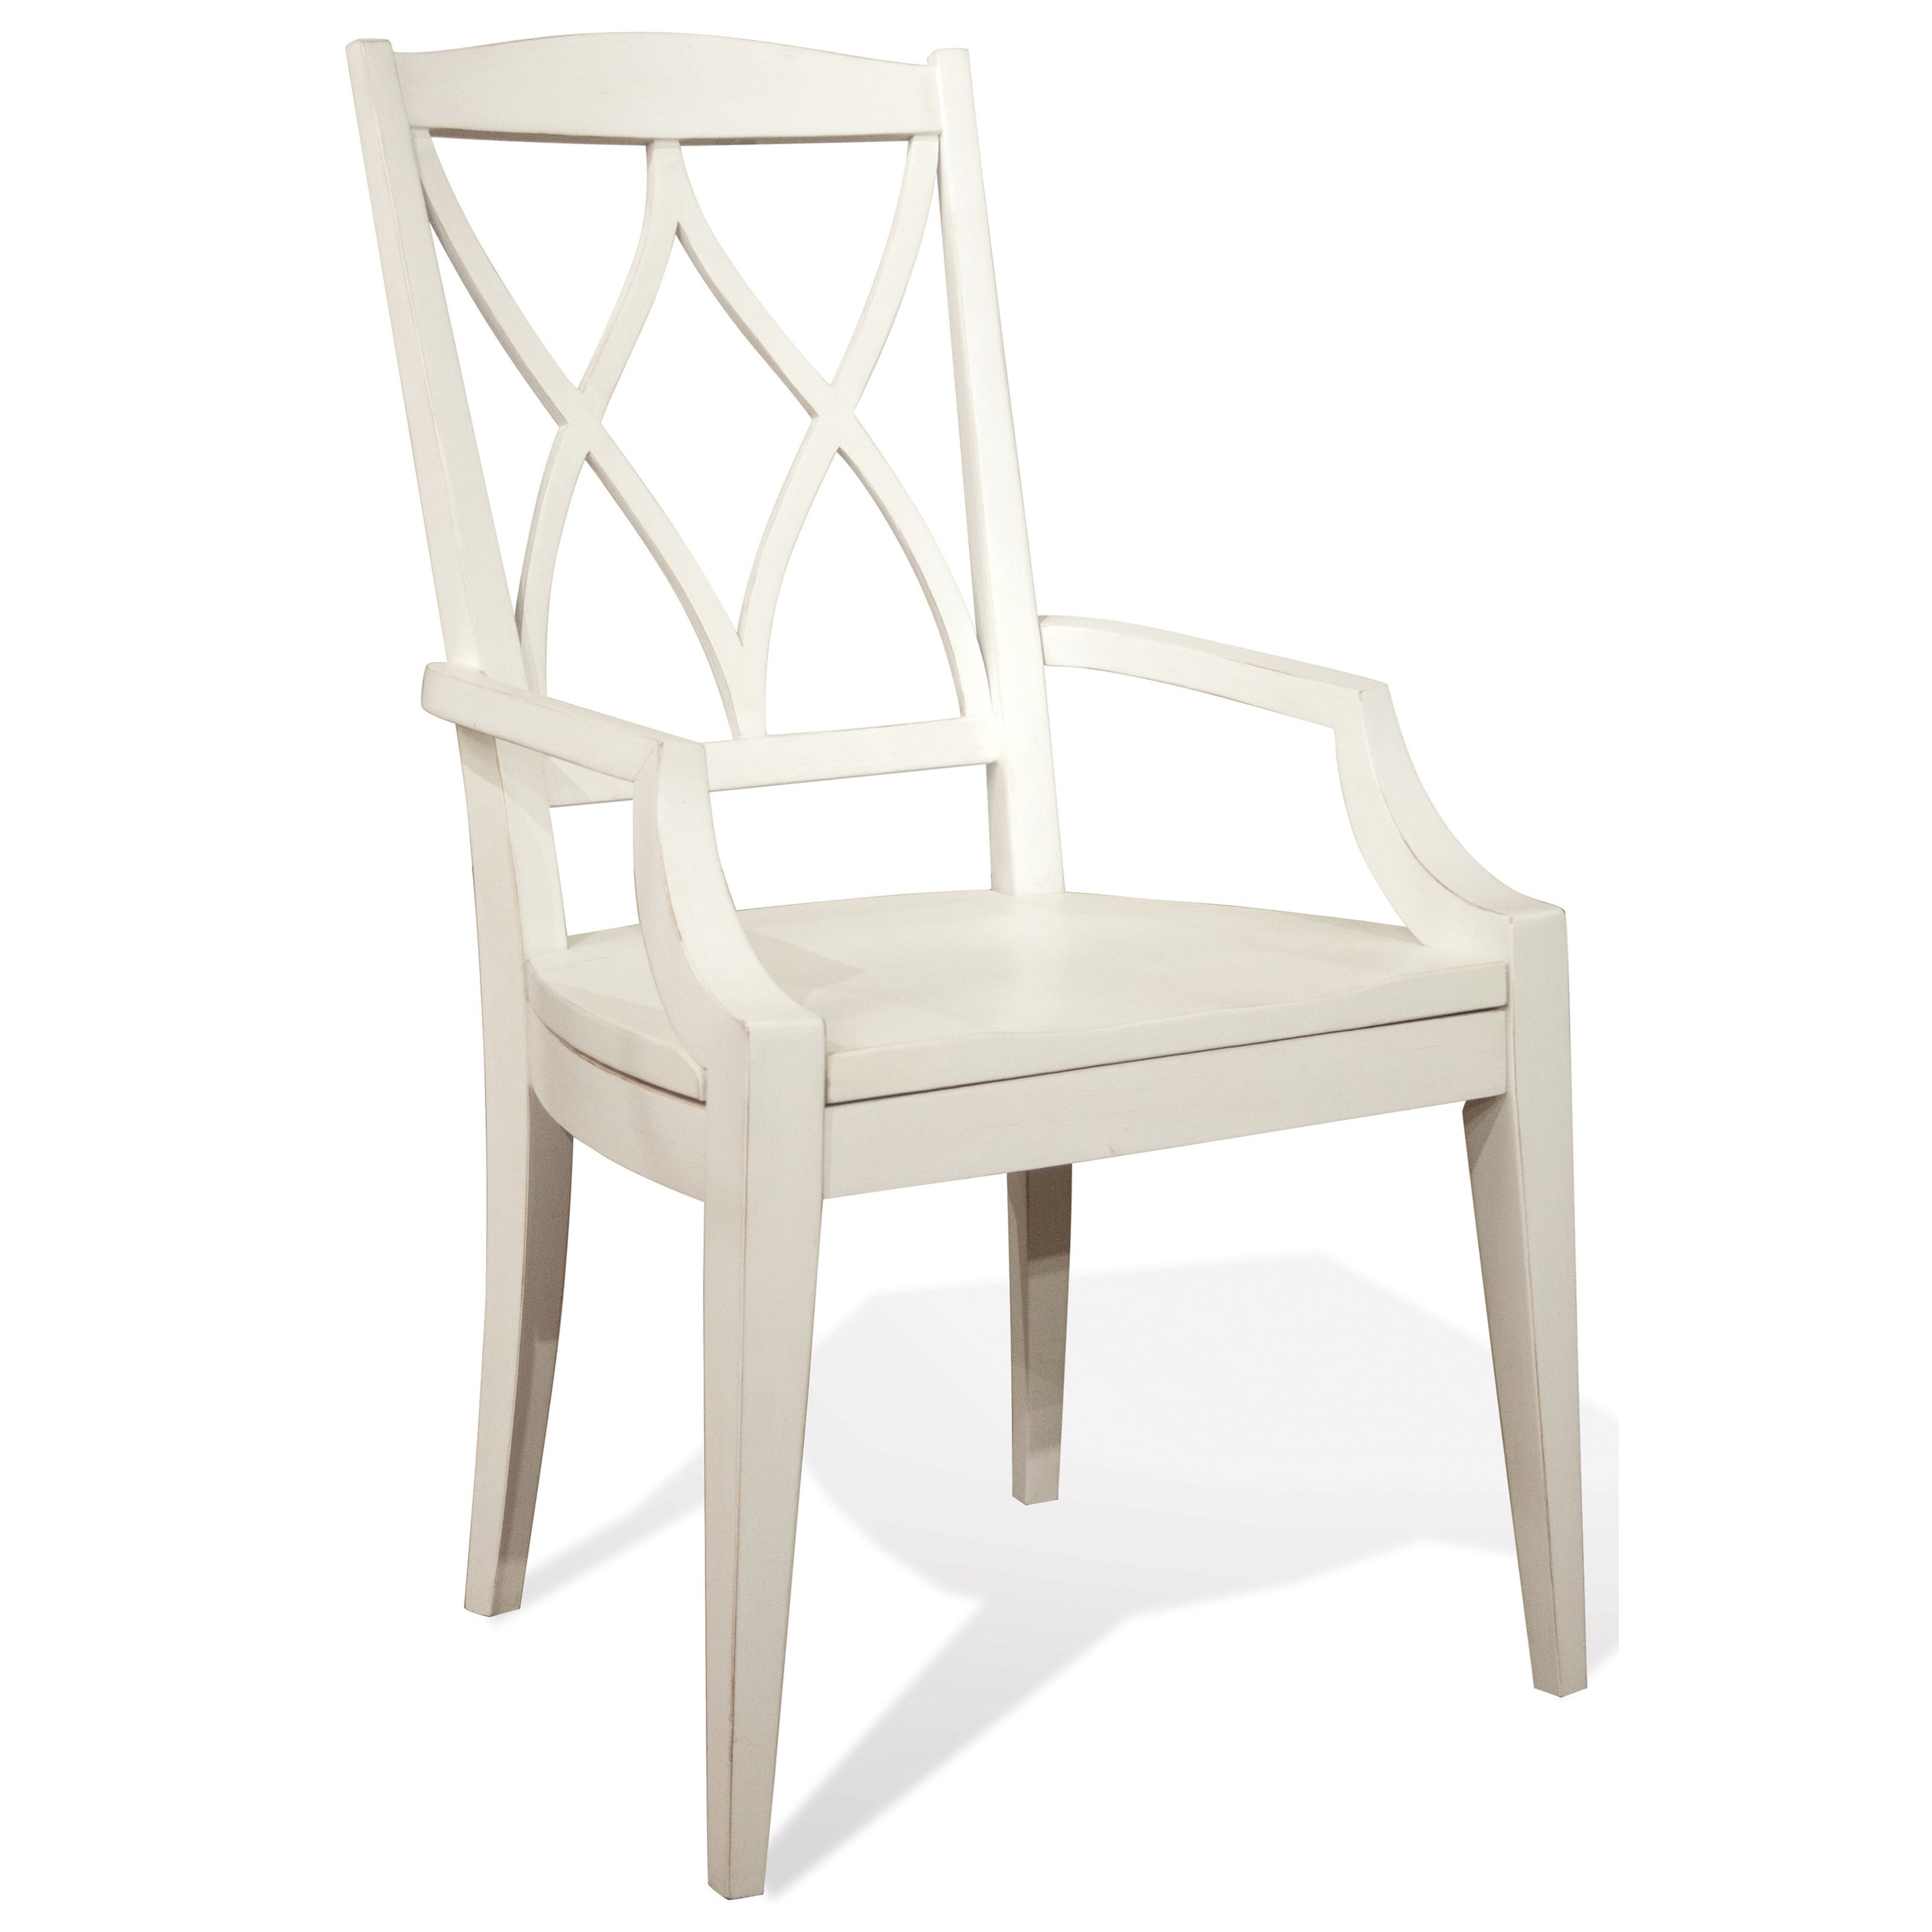 XX-Back Arm Chair